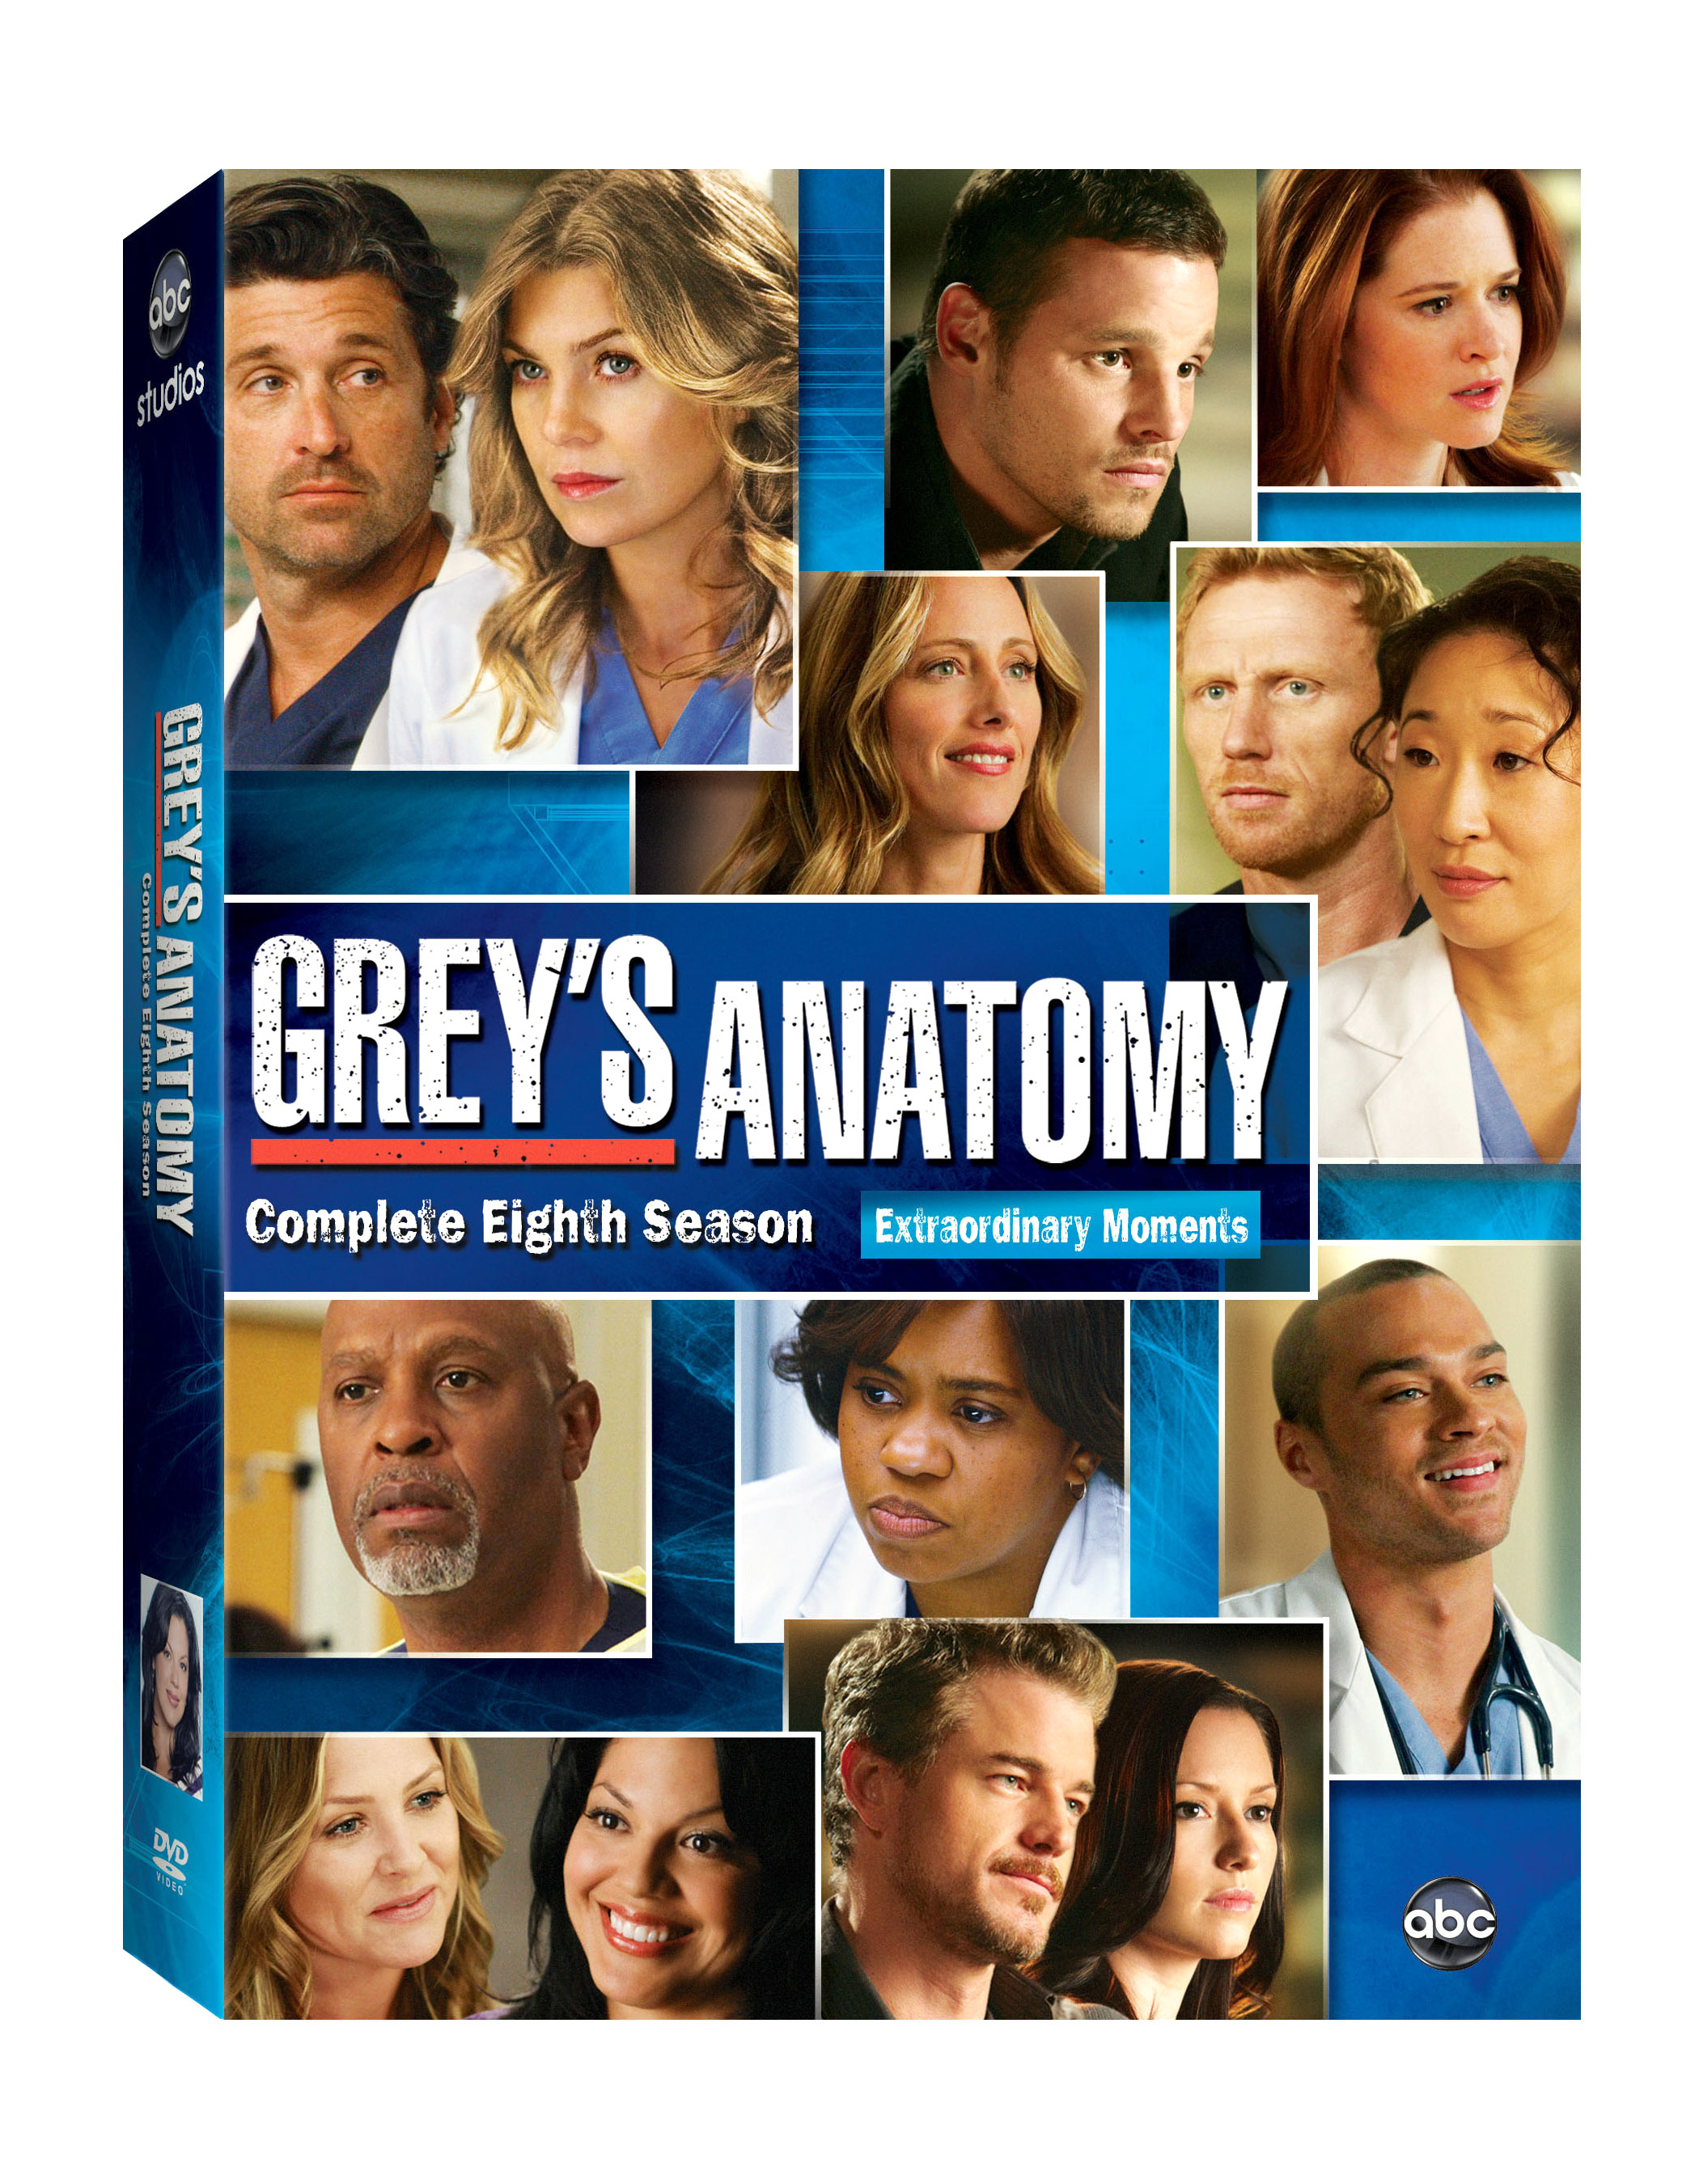 Greys-Anatomy-S08-1-dvdbash | DVDbash